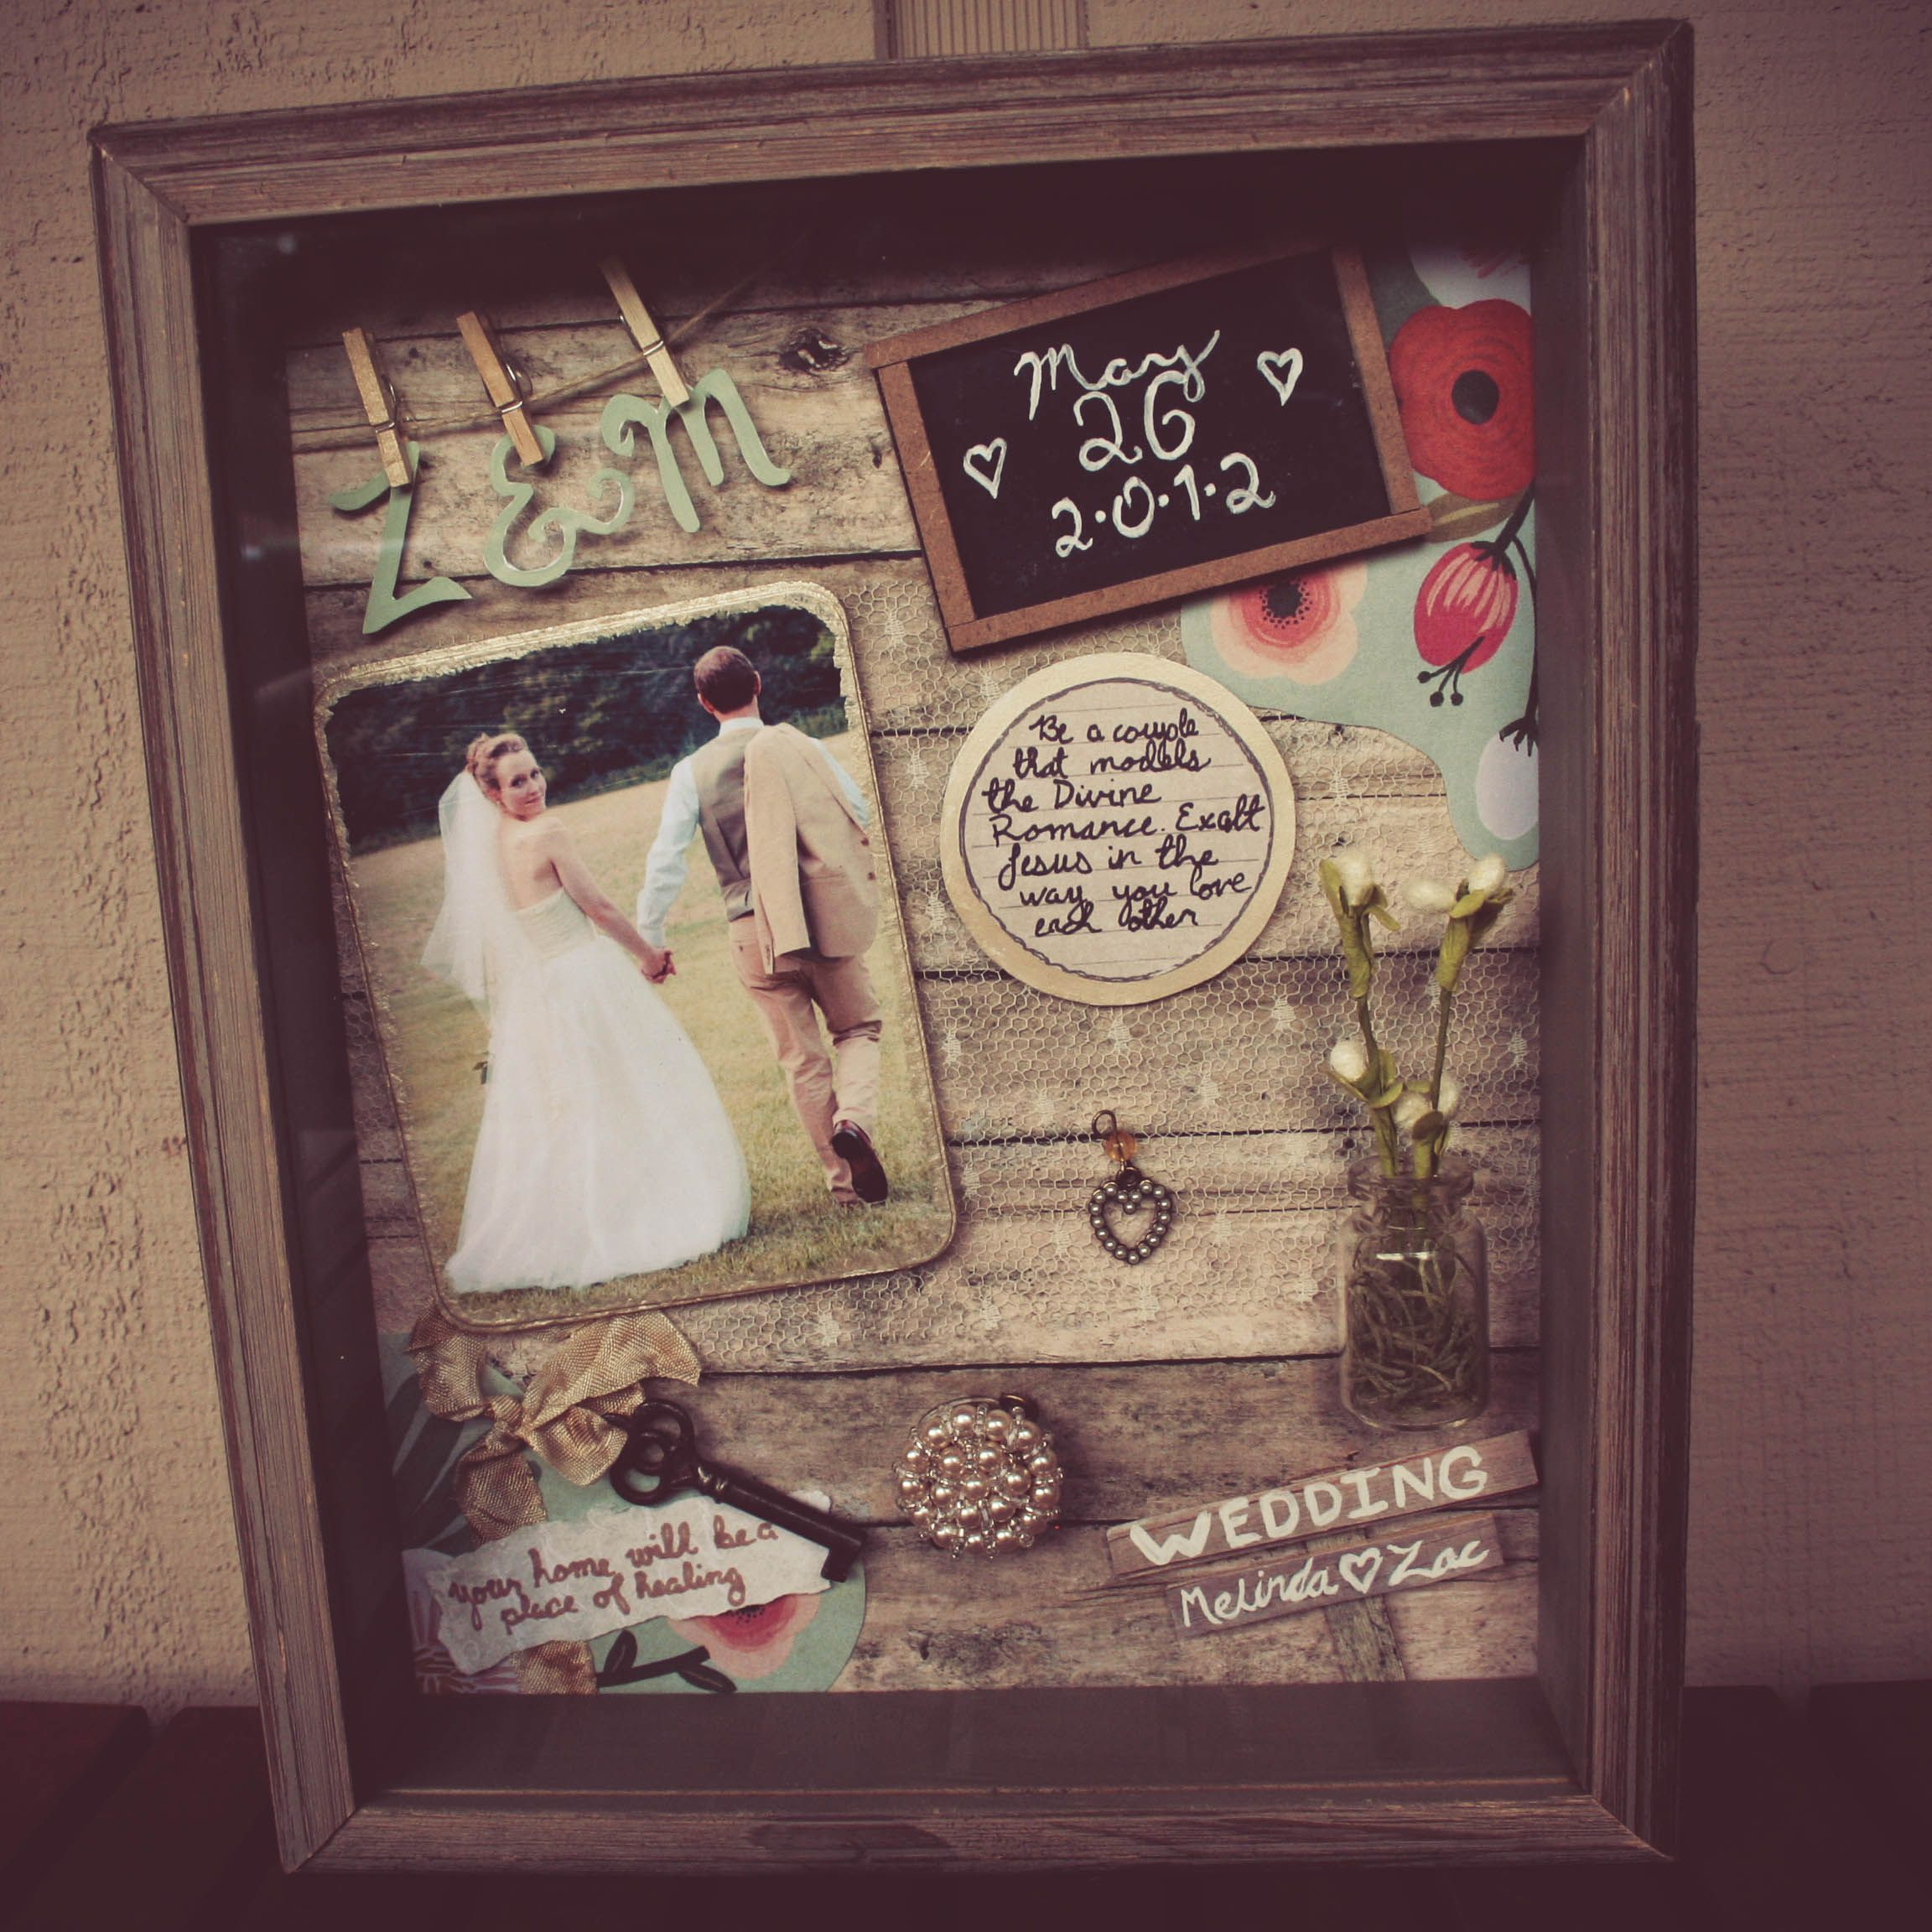 Shadow Box Ideas To Keep Your Memories and How to Make It     shadow box decorating ideas shadow box ideas pinterest how to decorate  shadow box picture frame shadow box ideas for boyfriend military shadow box  ideas